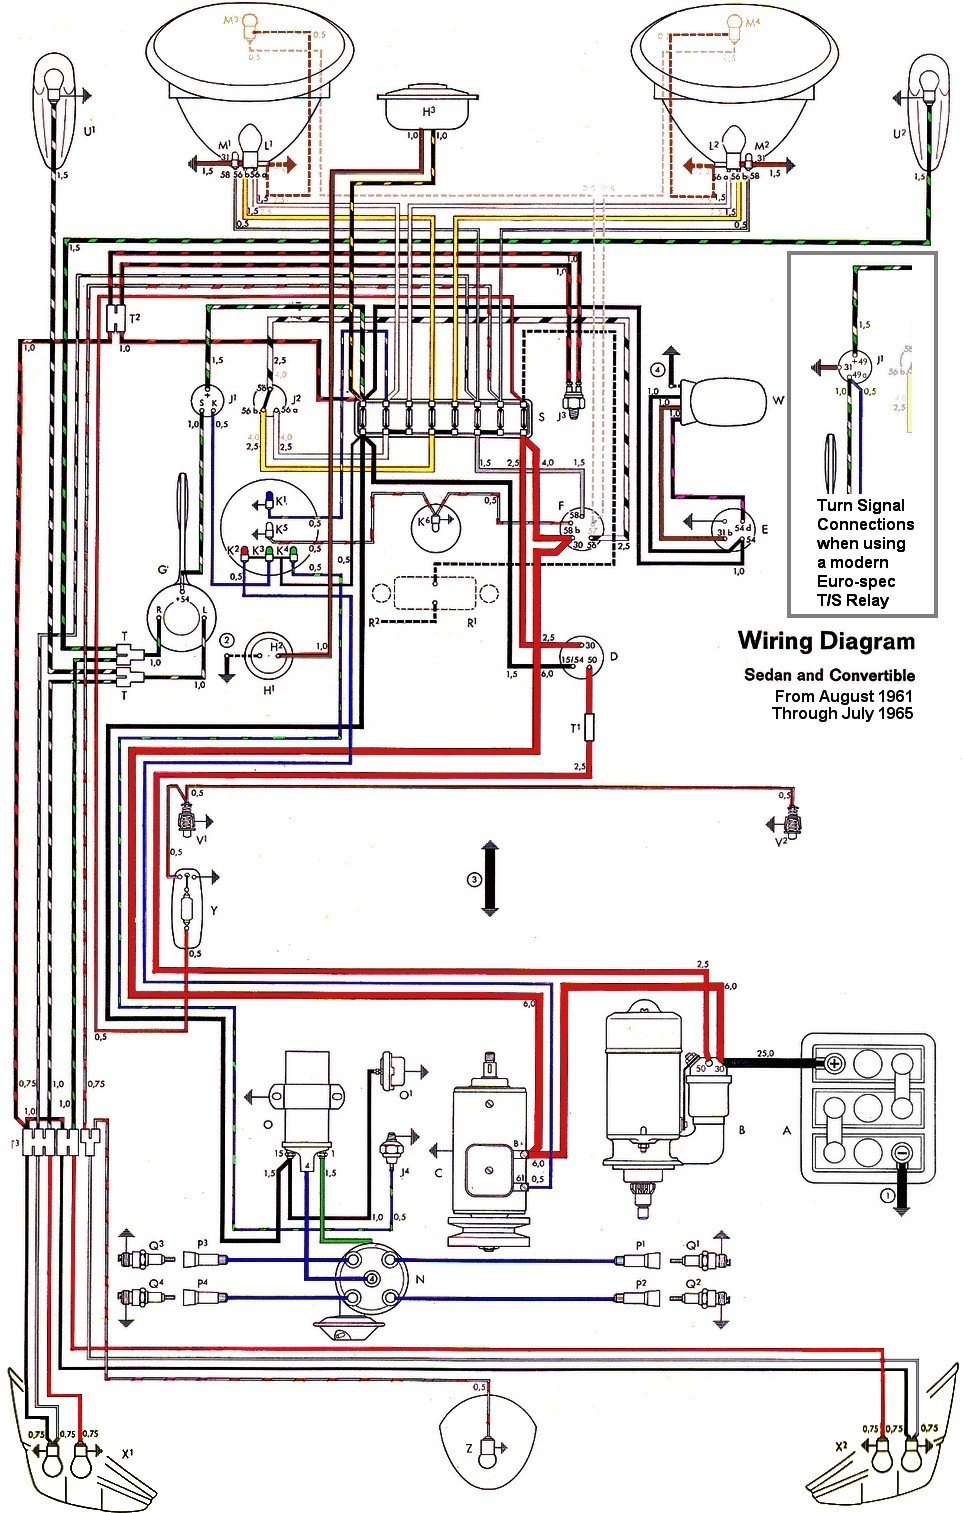 2000 Vw Wiring Diagram Schematic Diagrams Beetle Fuse Box Todays Passat